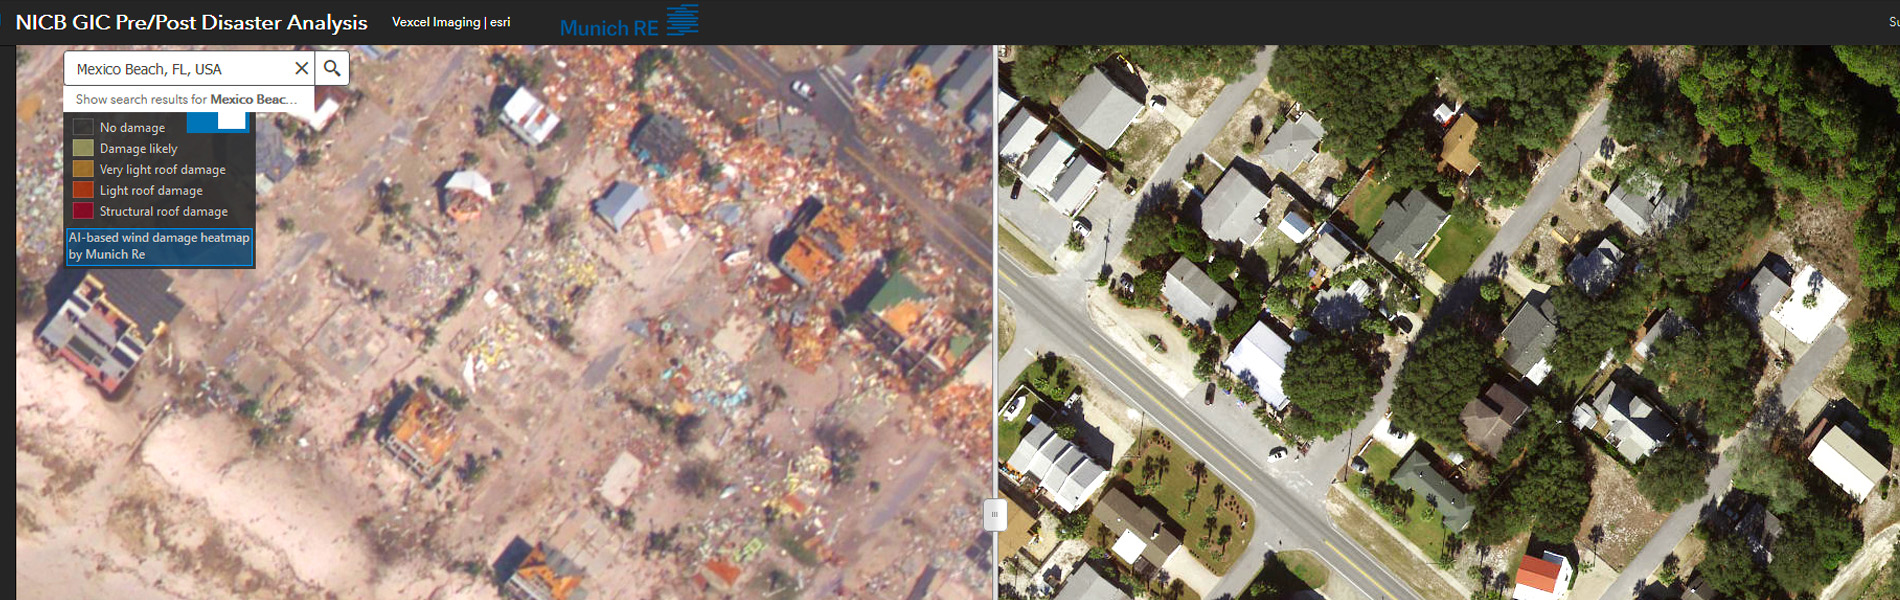 Geospatial Intelligence before and after